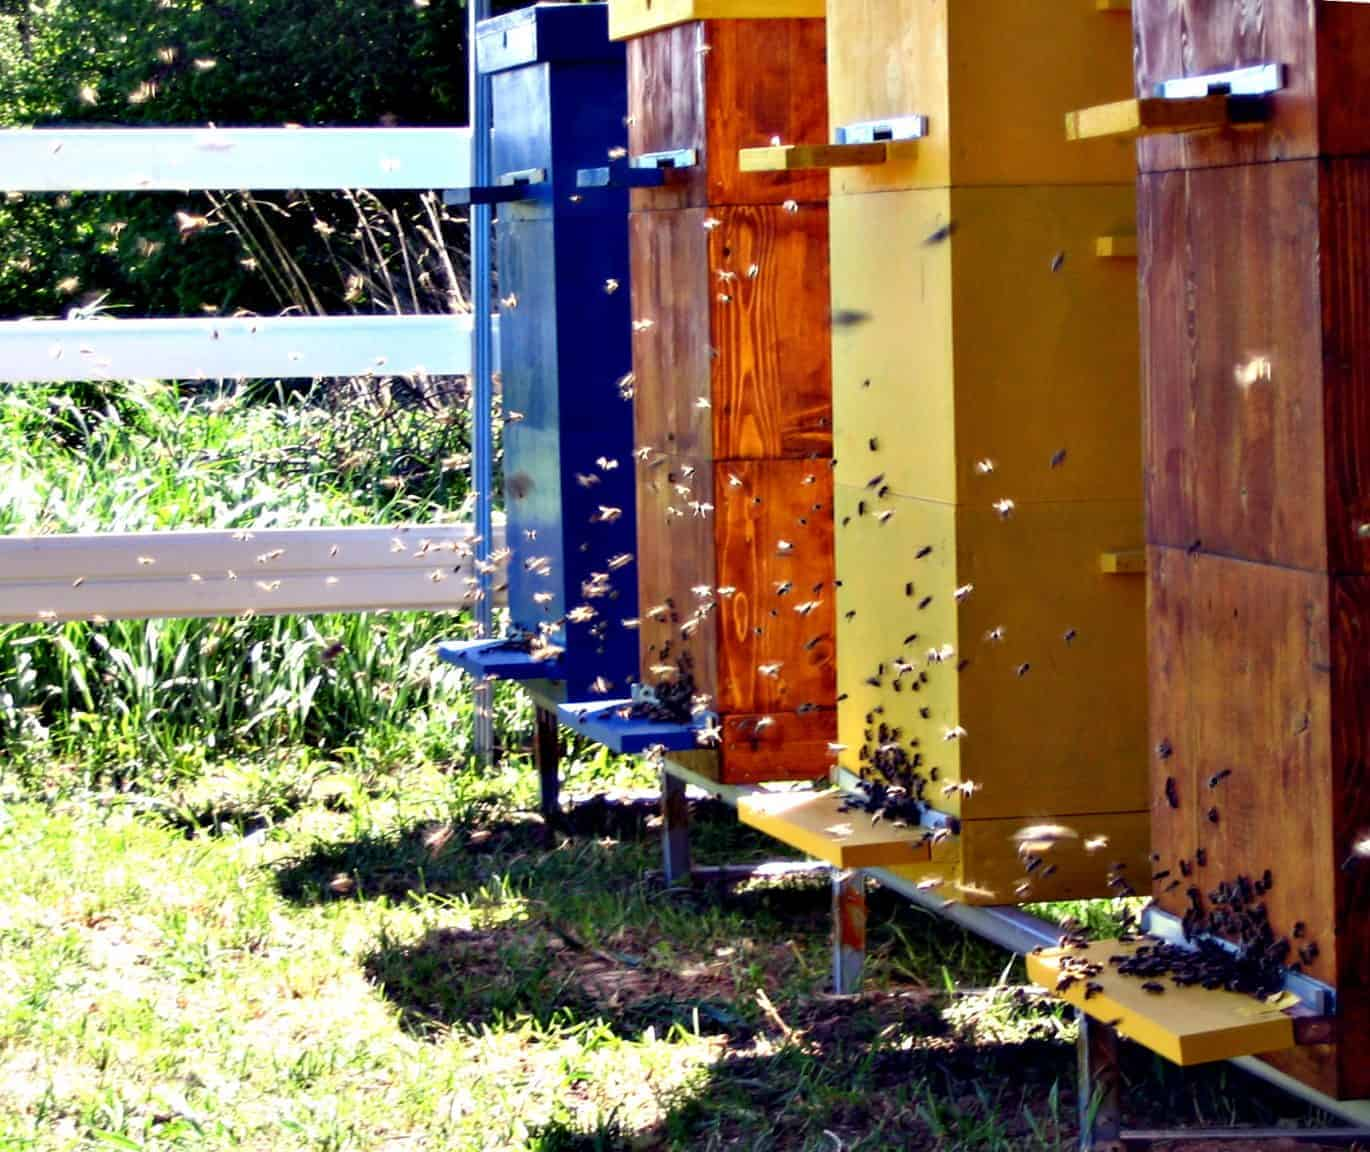 Bees in the Late Summer